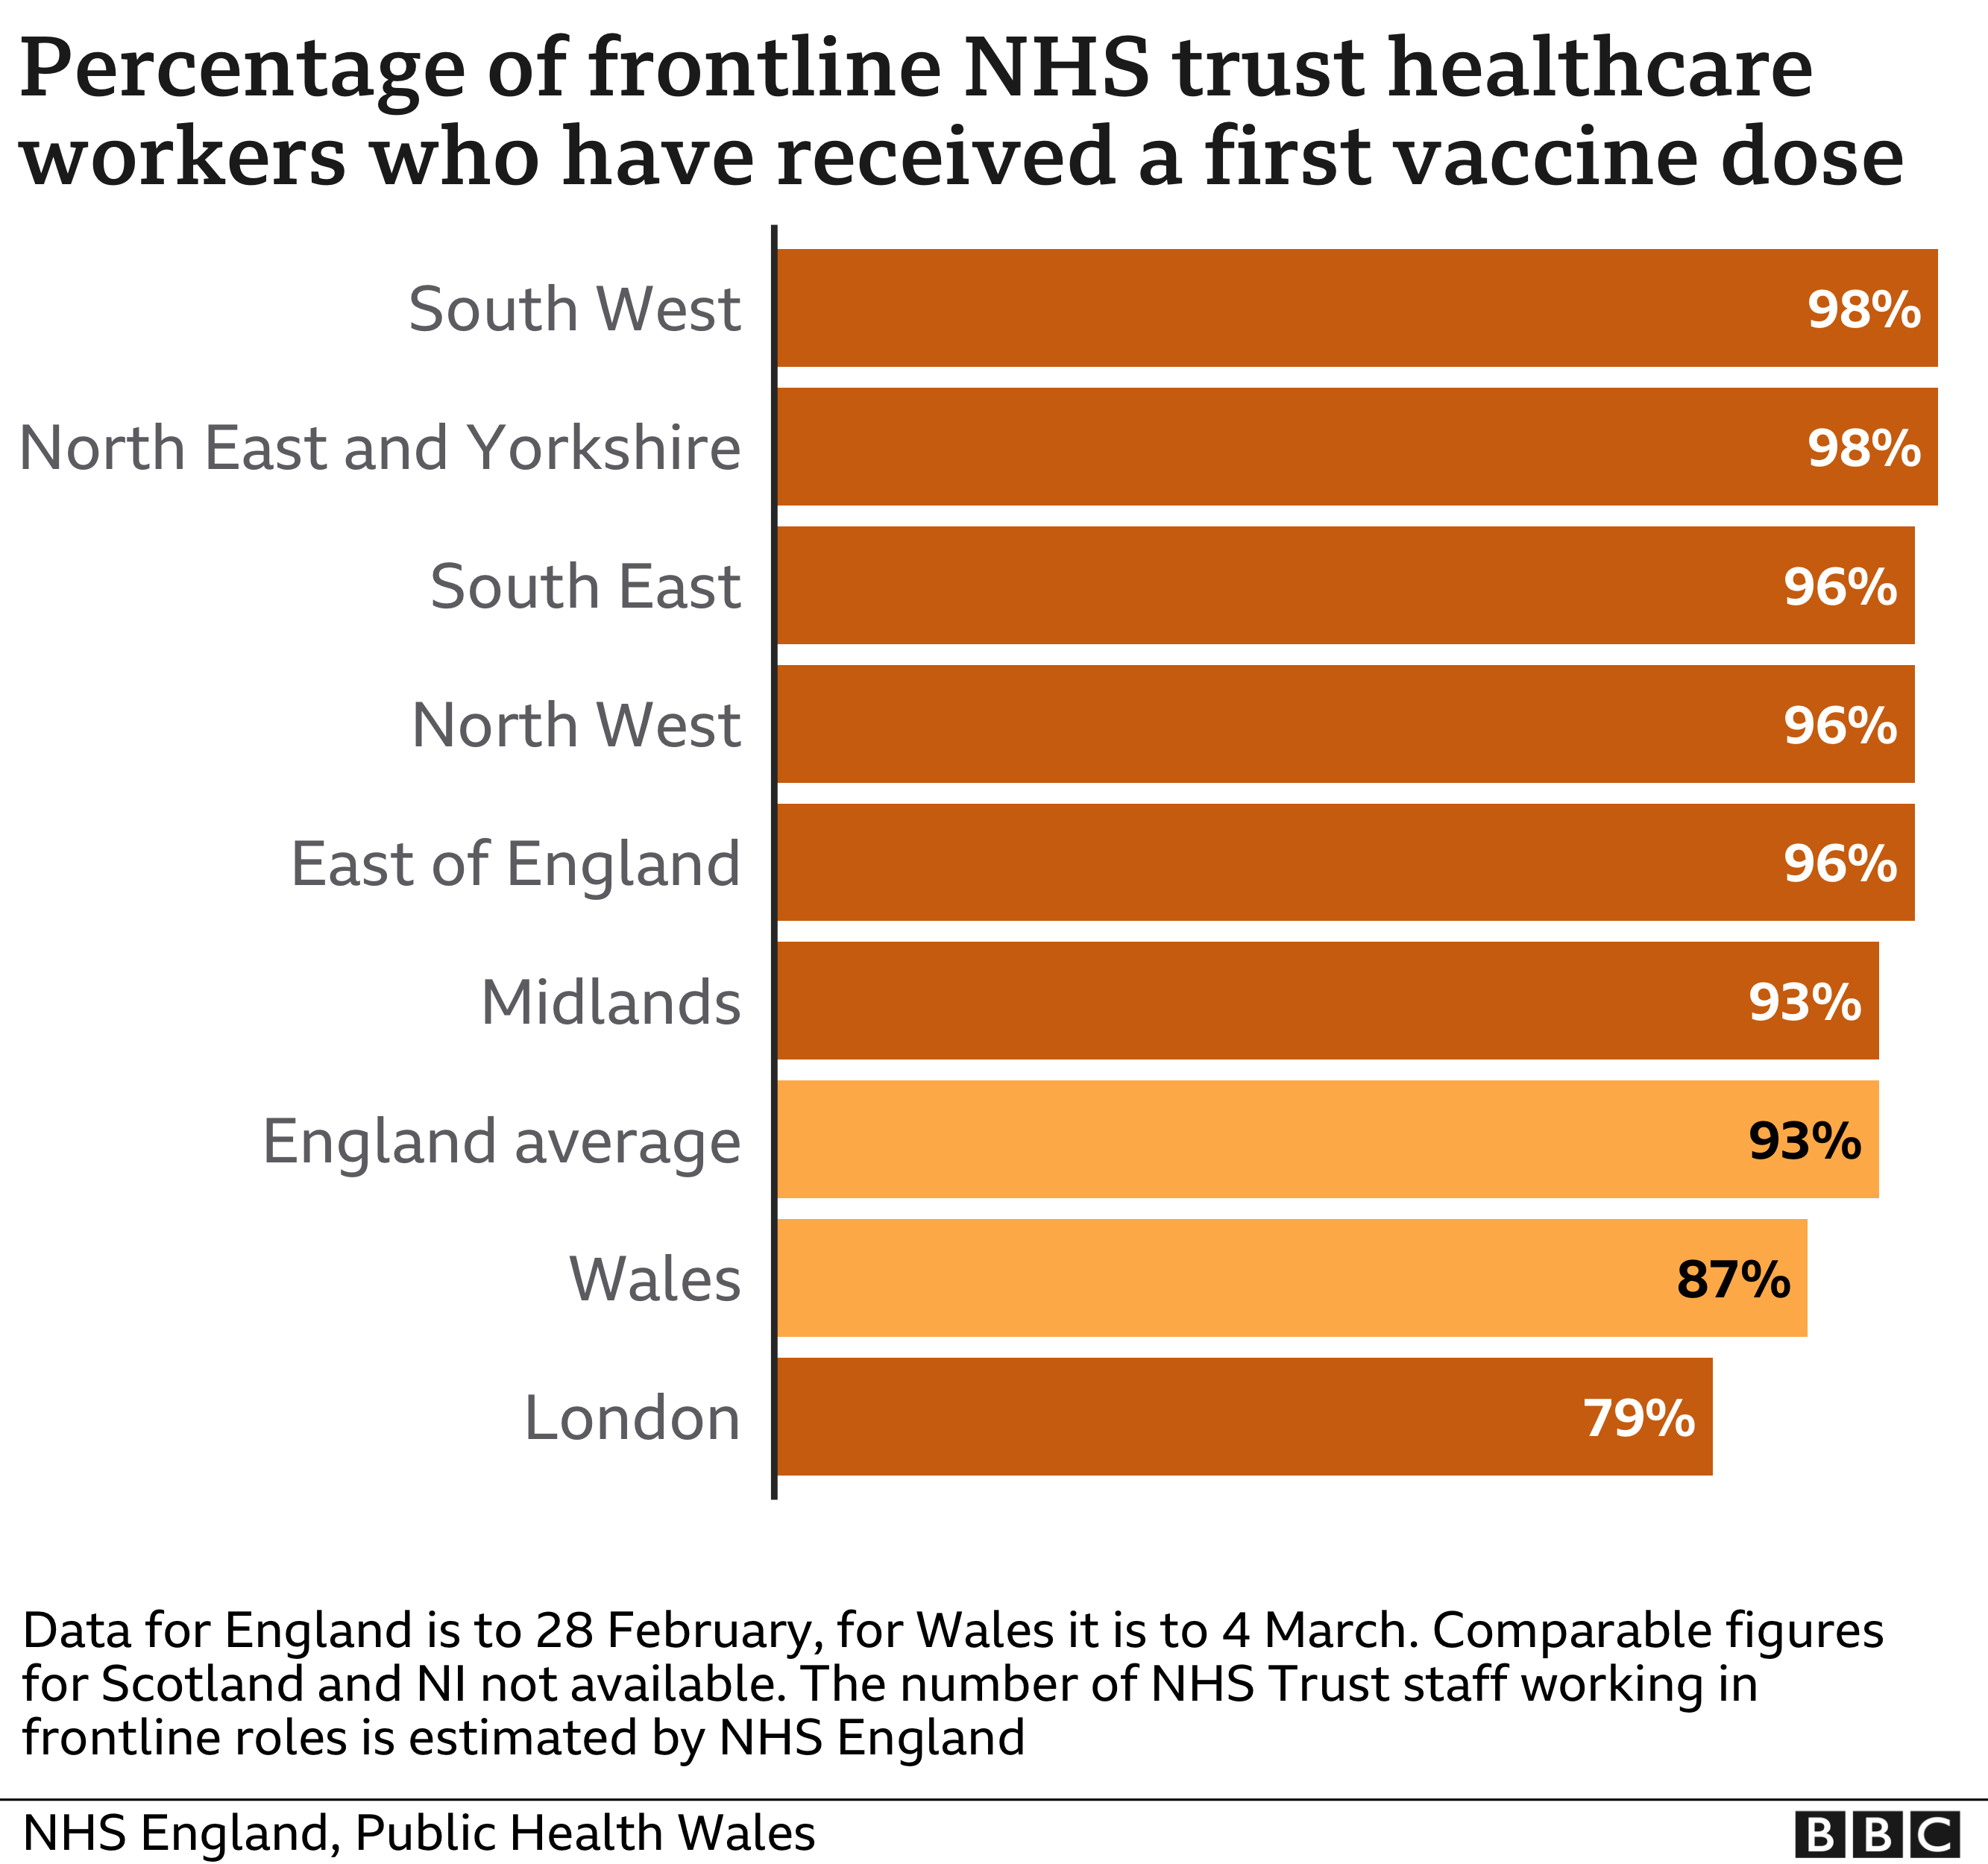 Percentage of NHS healthcare workers who have received first dose